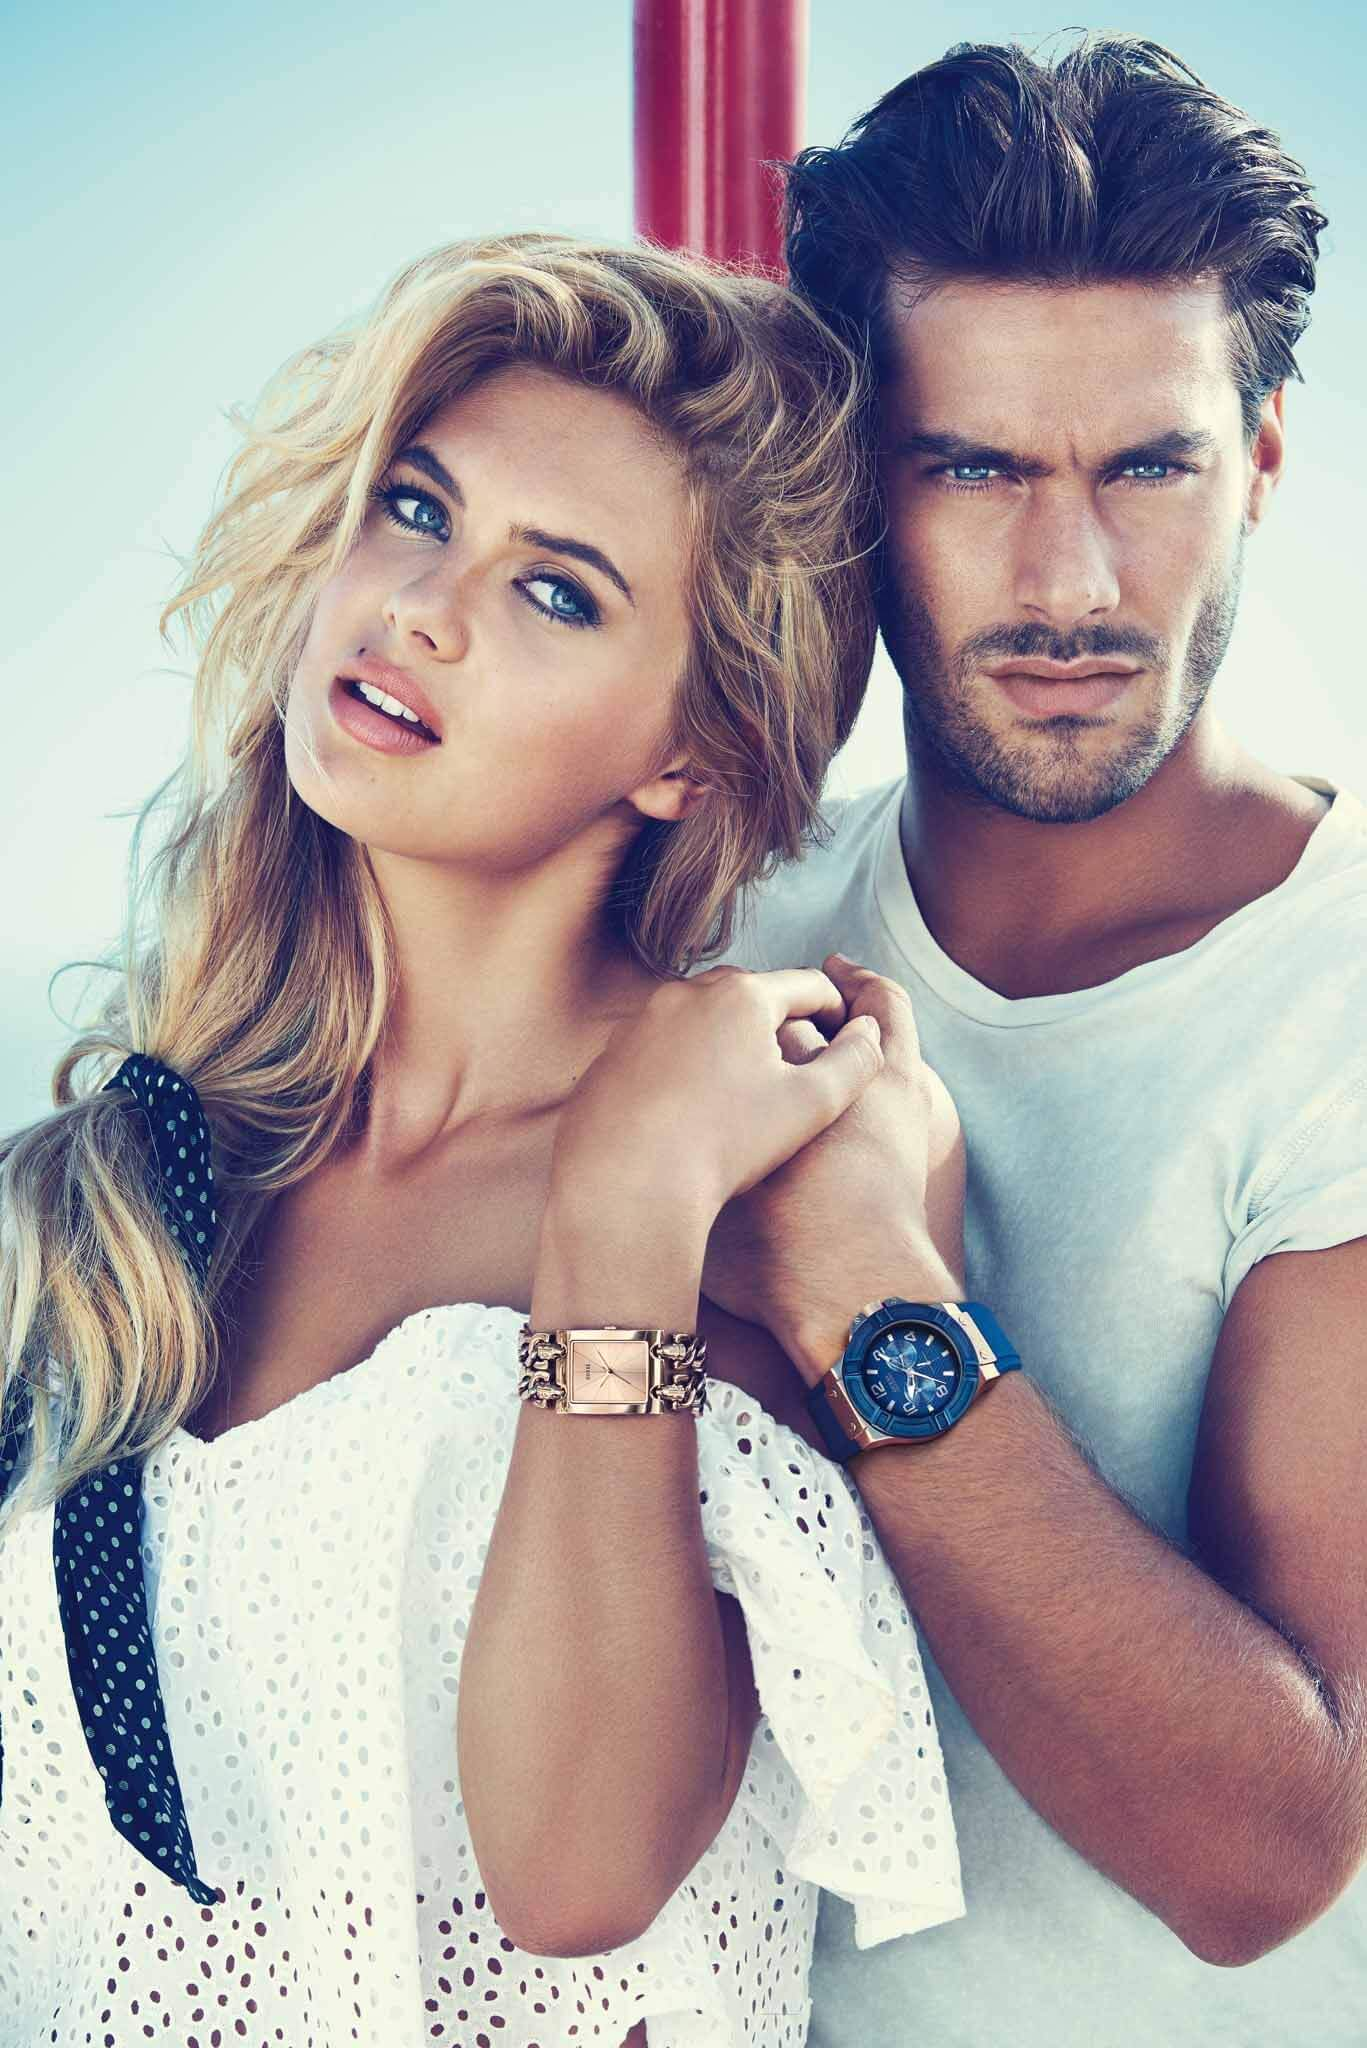 7 Trendy Wedding Couple Watches For Him And Her That Are Perfect Gifts